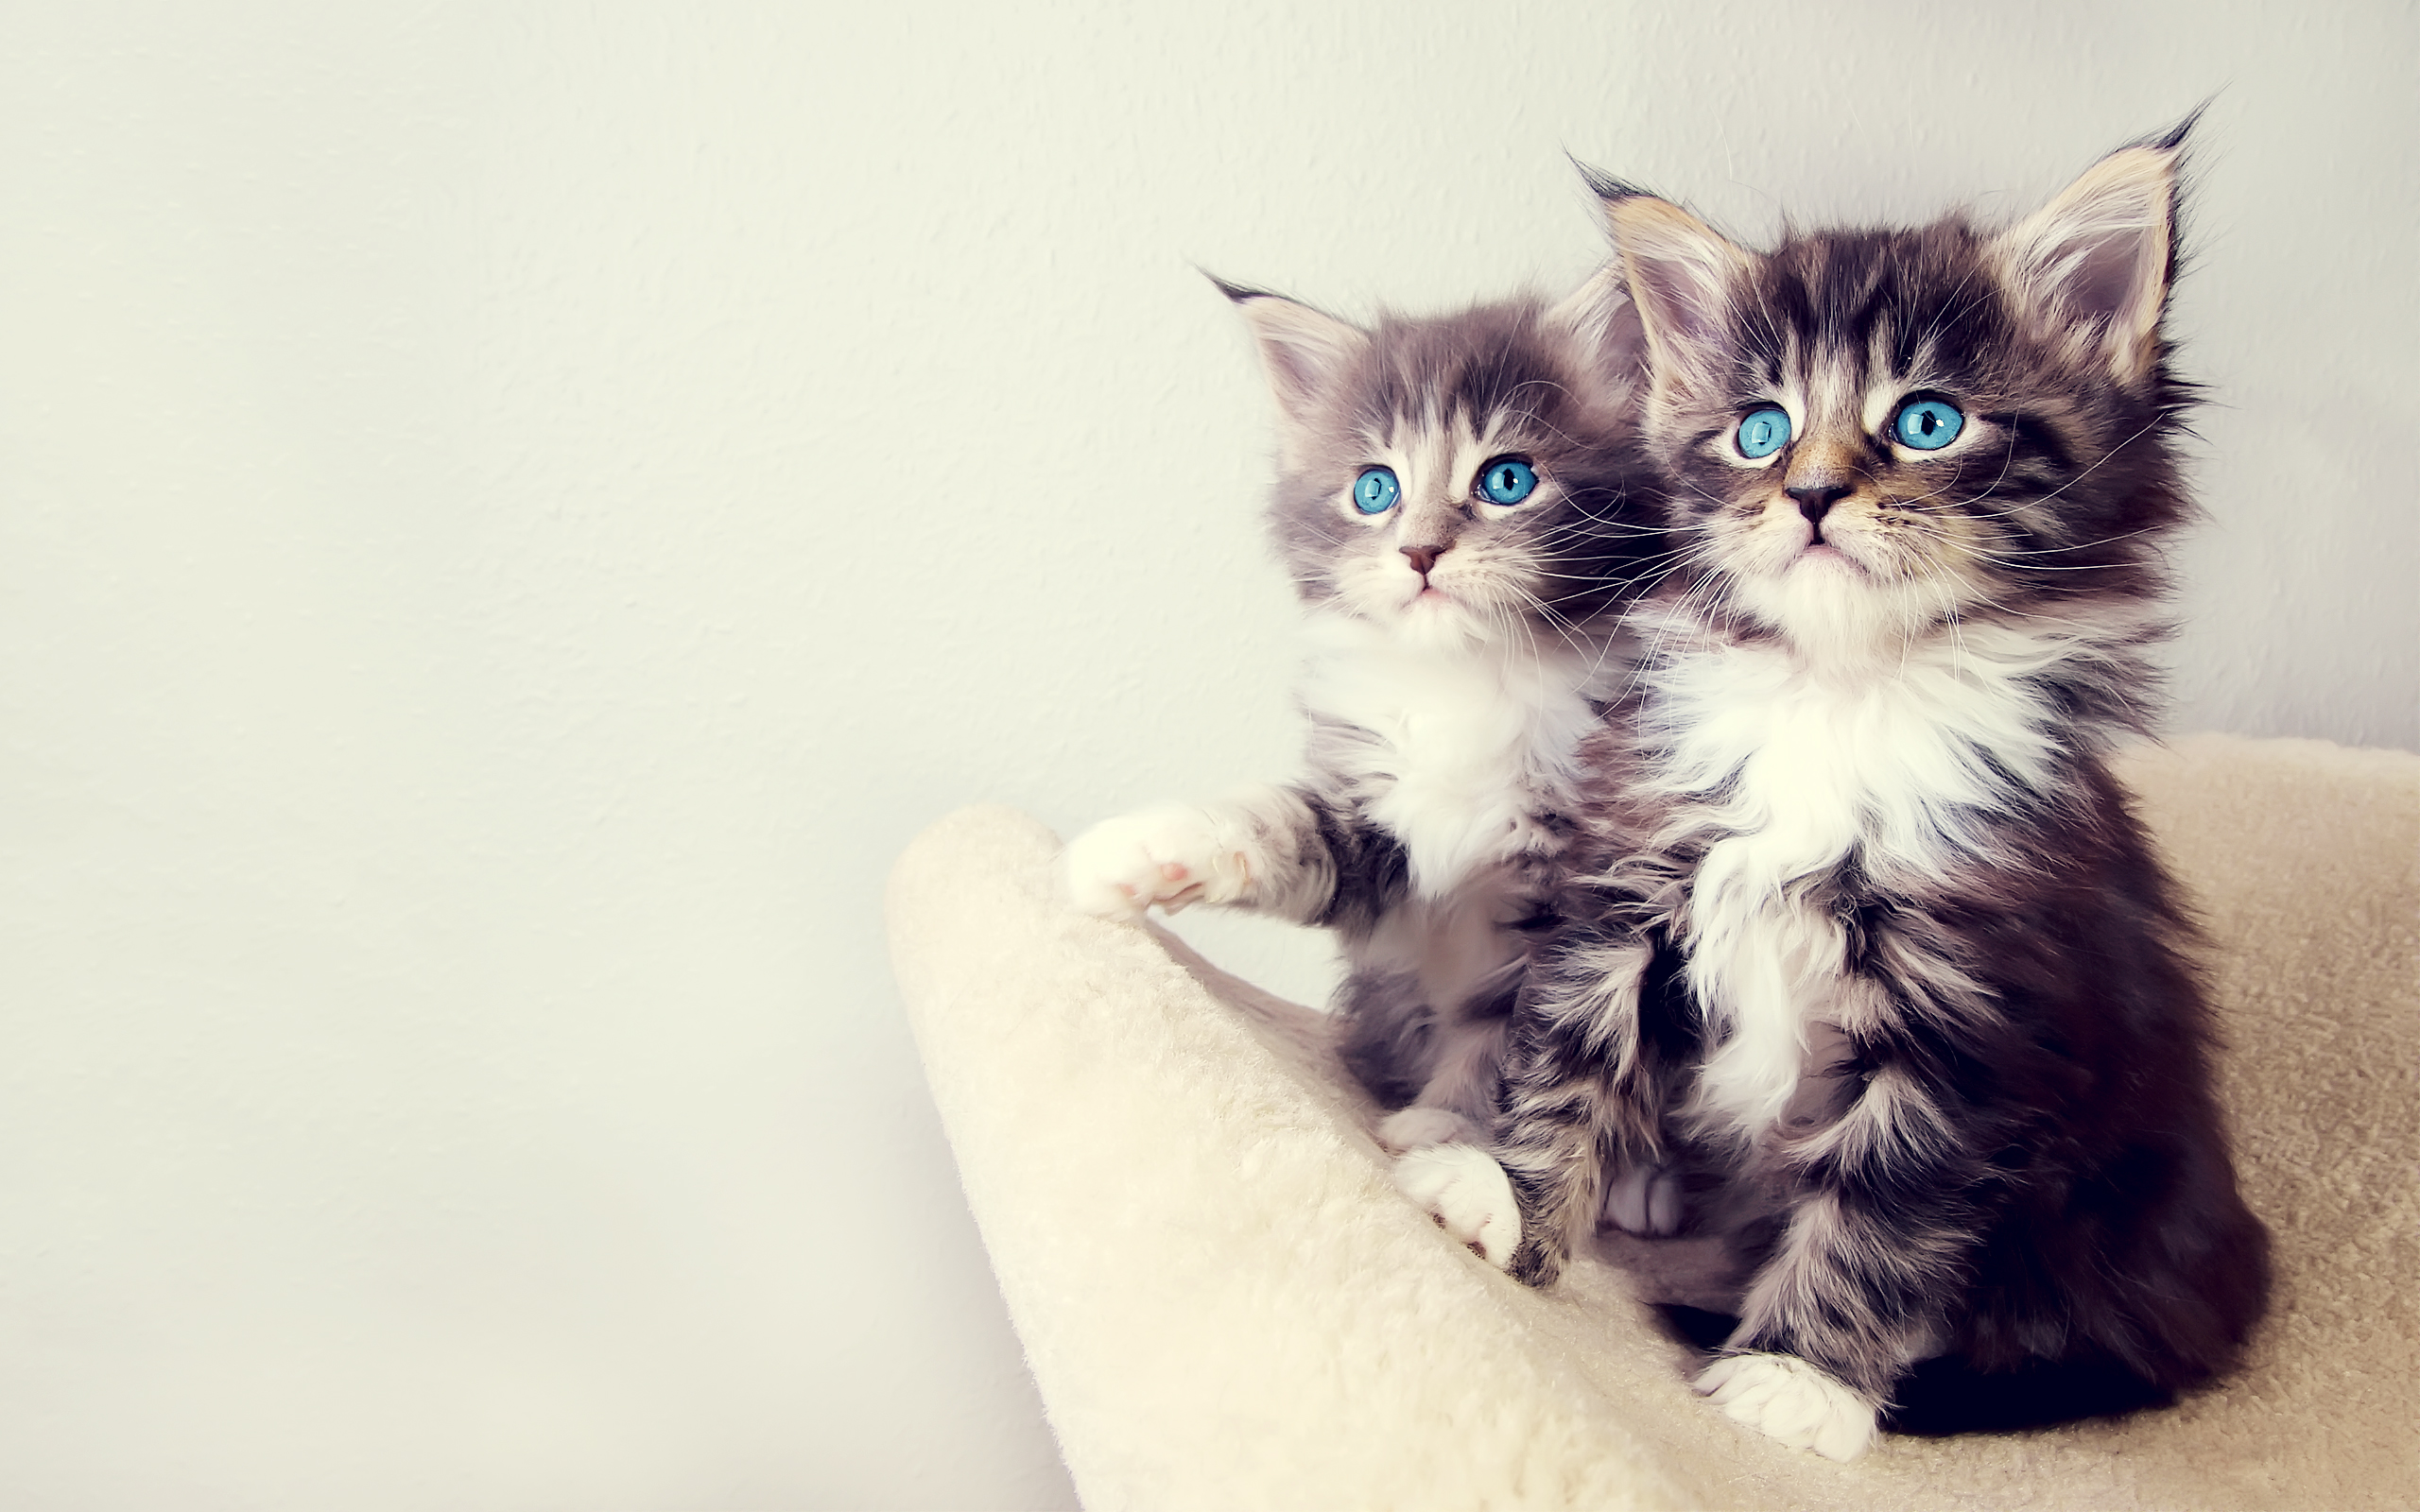 Cute Kittens Wallpapers HD Wallpapers 2560x1600